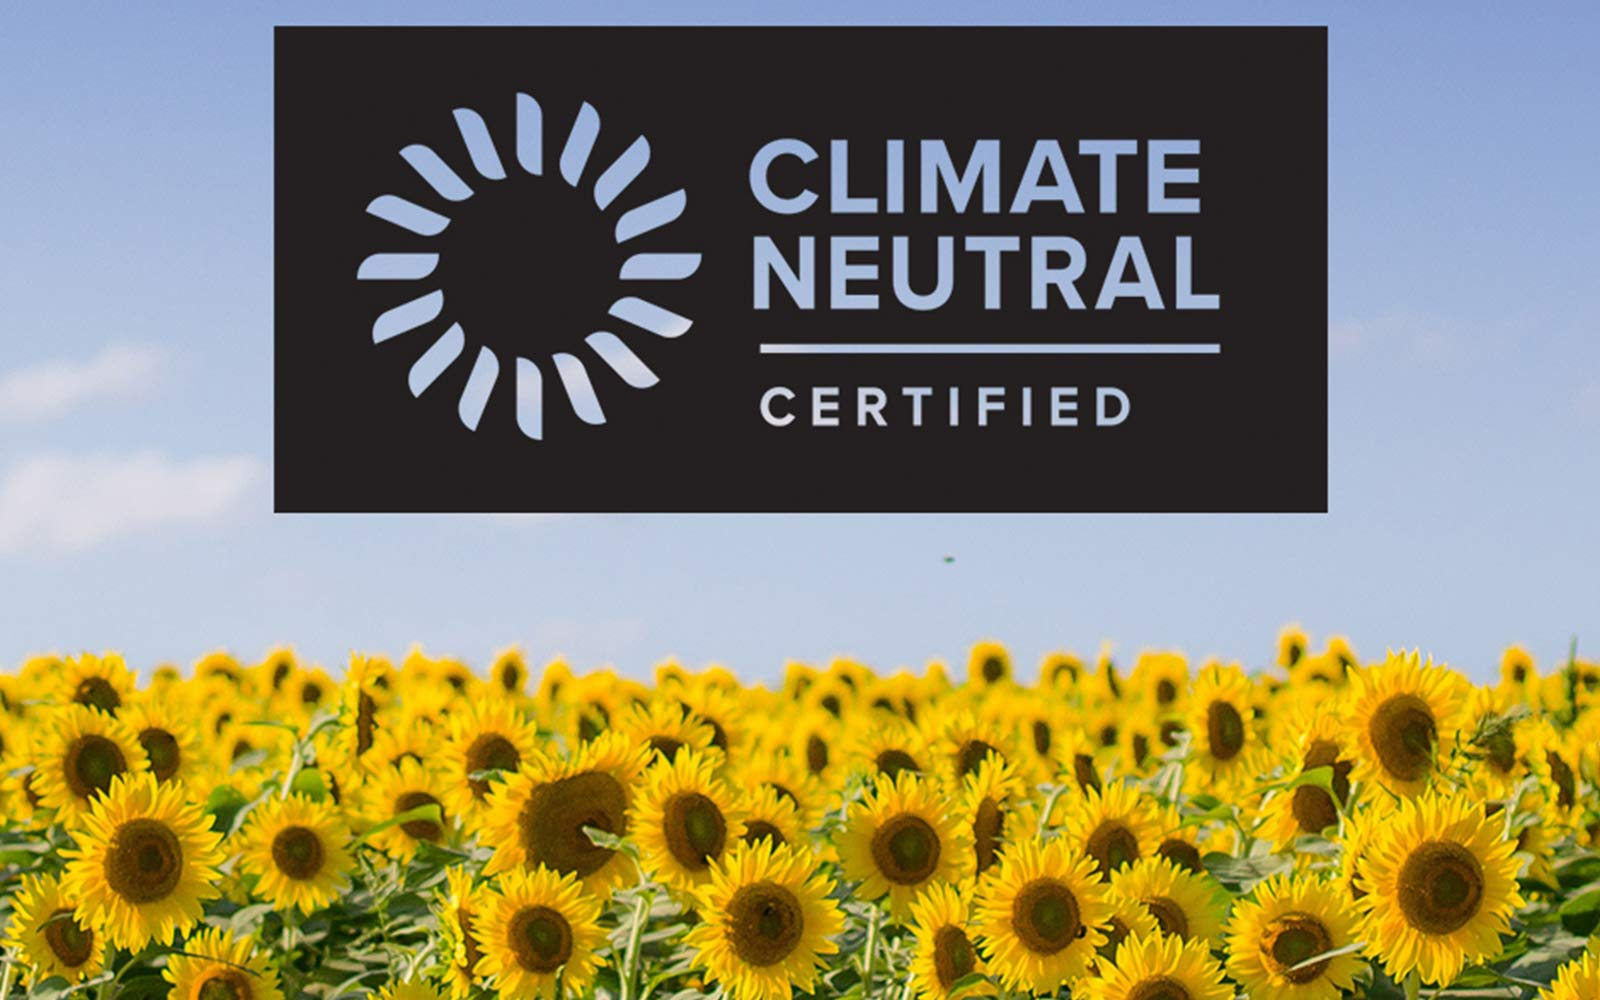 Today We are Climate Neutral Certified